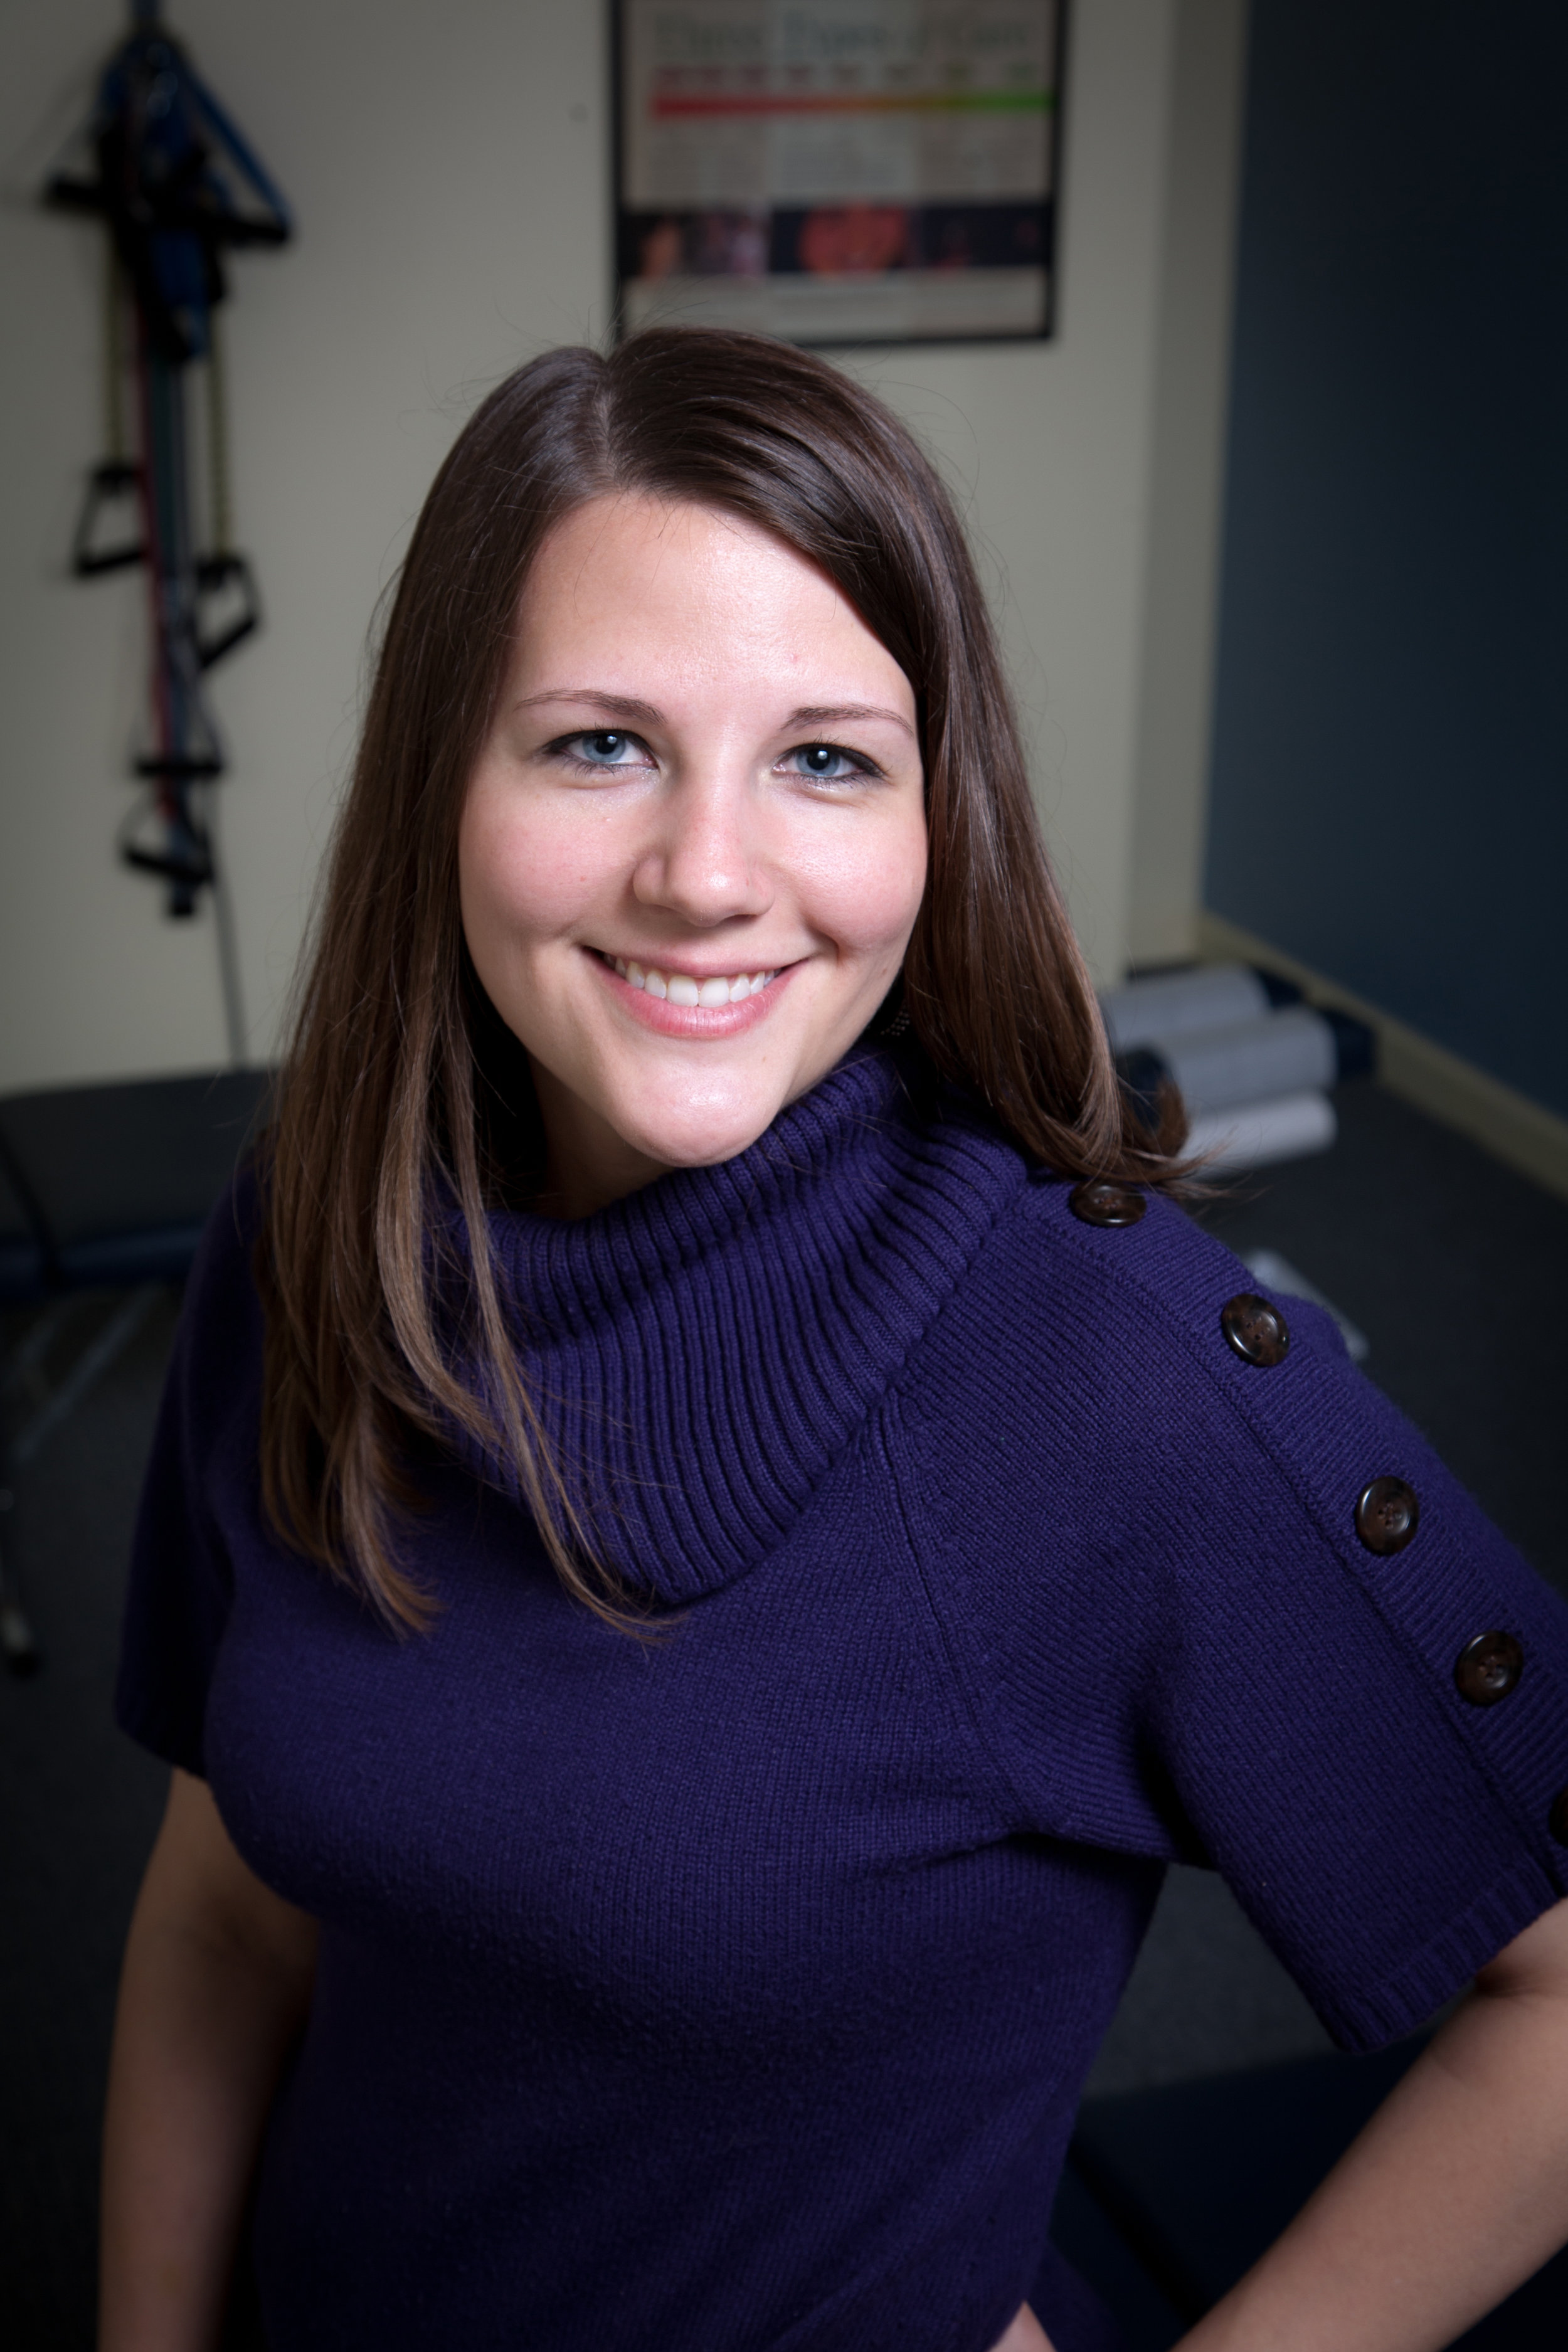 Relief Care Chiropractic - Dr. Ashley Neumann - Chicago Chiropractor